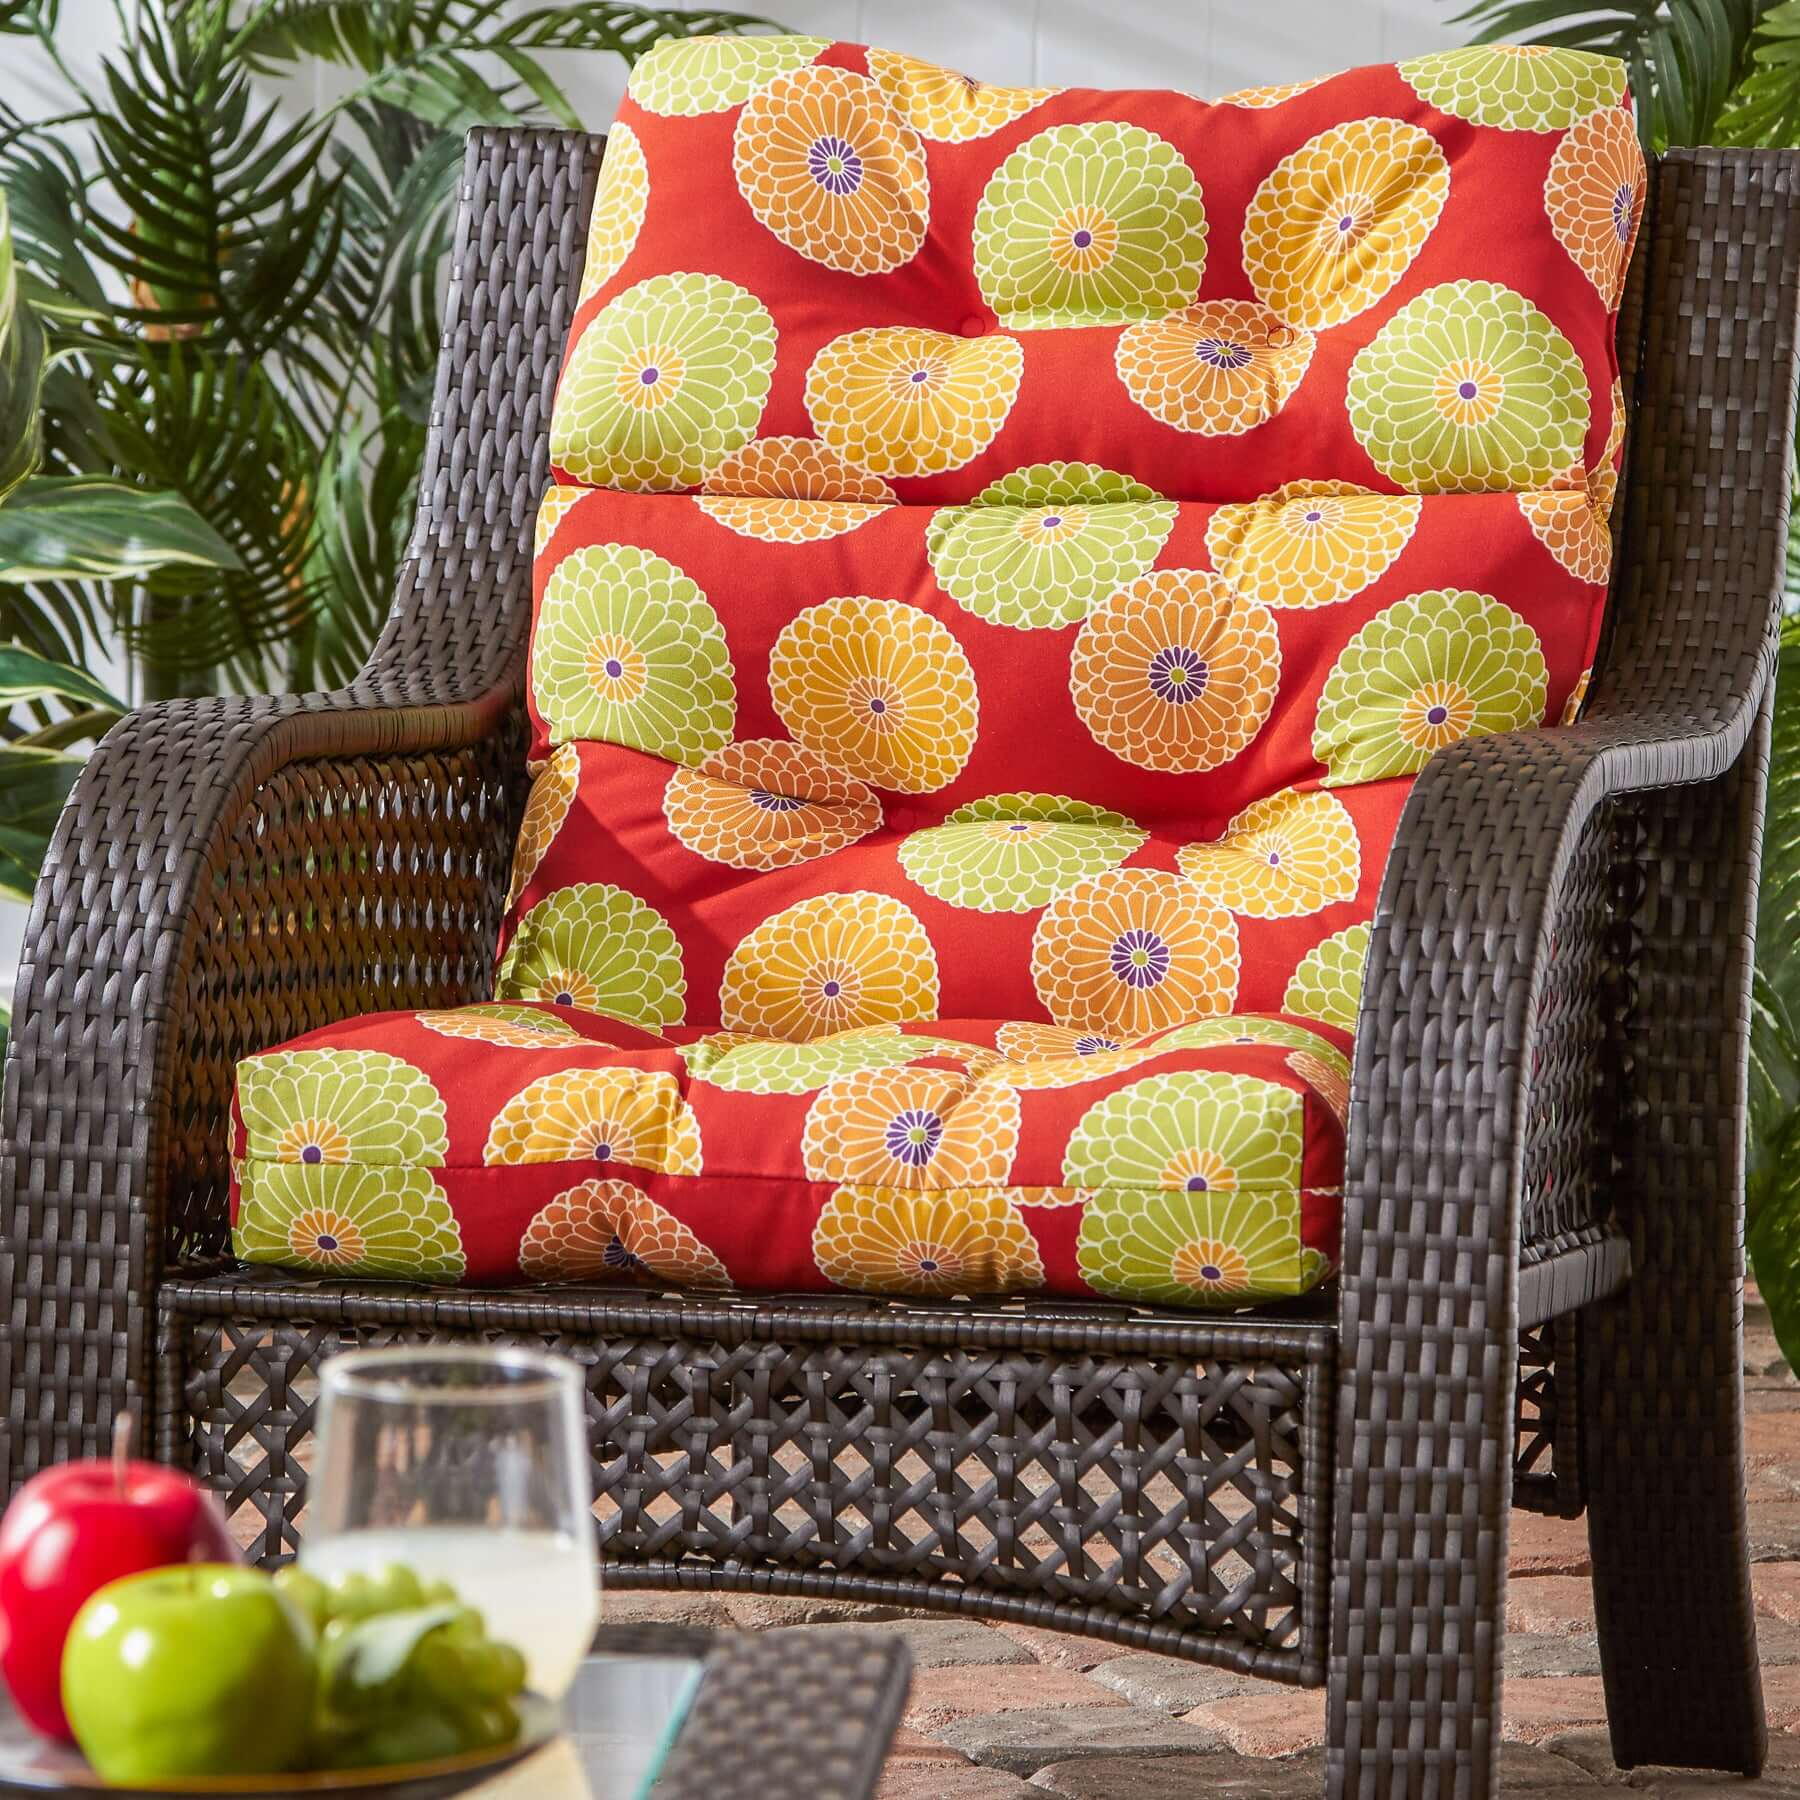 HIGH BACK PATIO CHAIR CUSHIONS WITH GOOD PATTERN